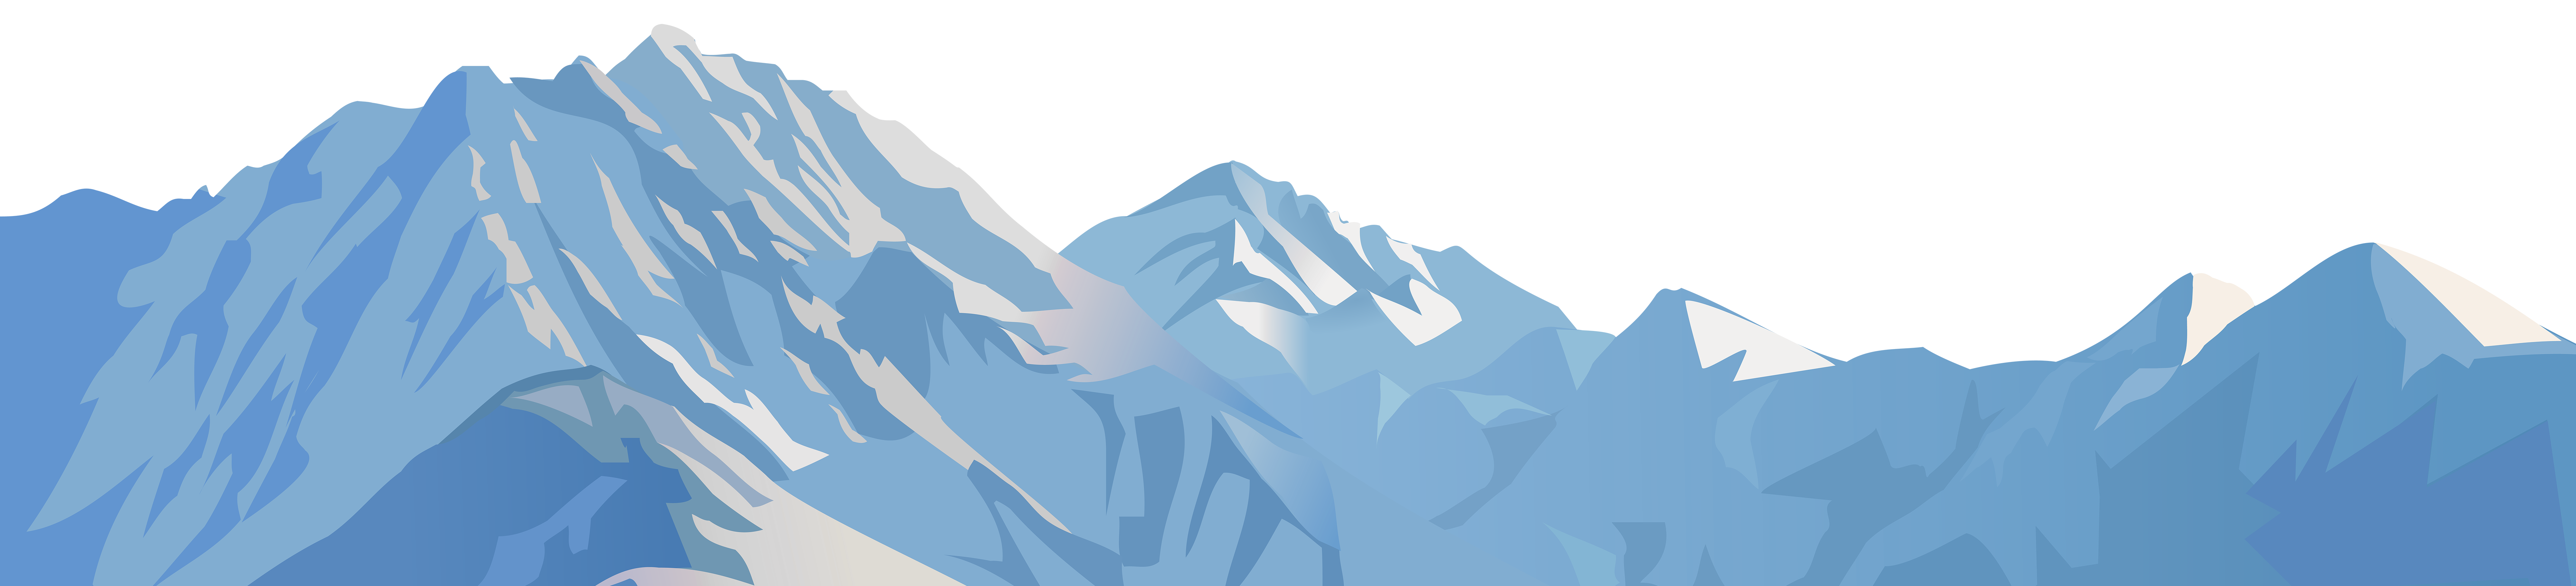 graphic free stock Snowy mountain transparent clip. Glacier clipart.